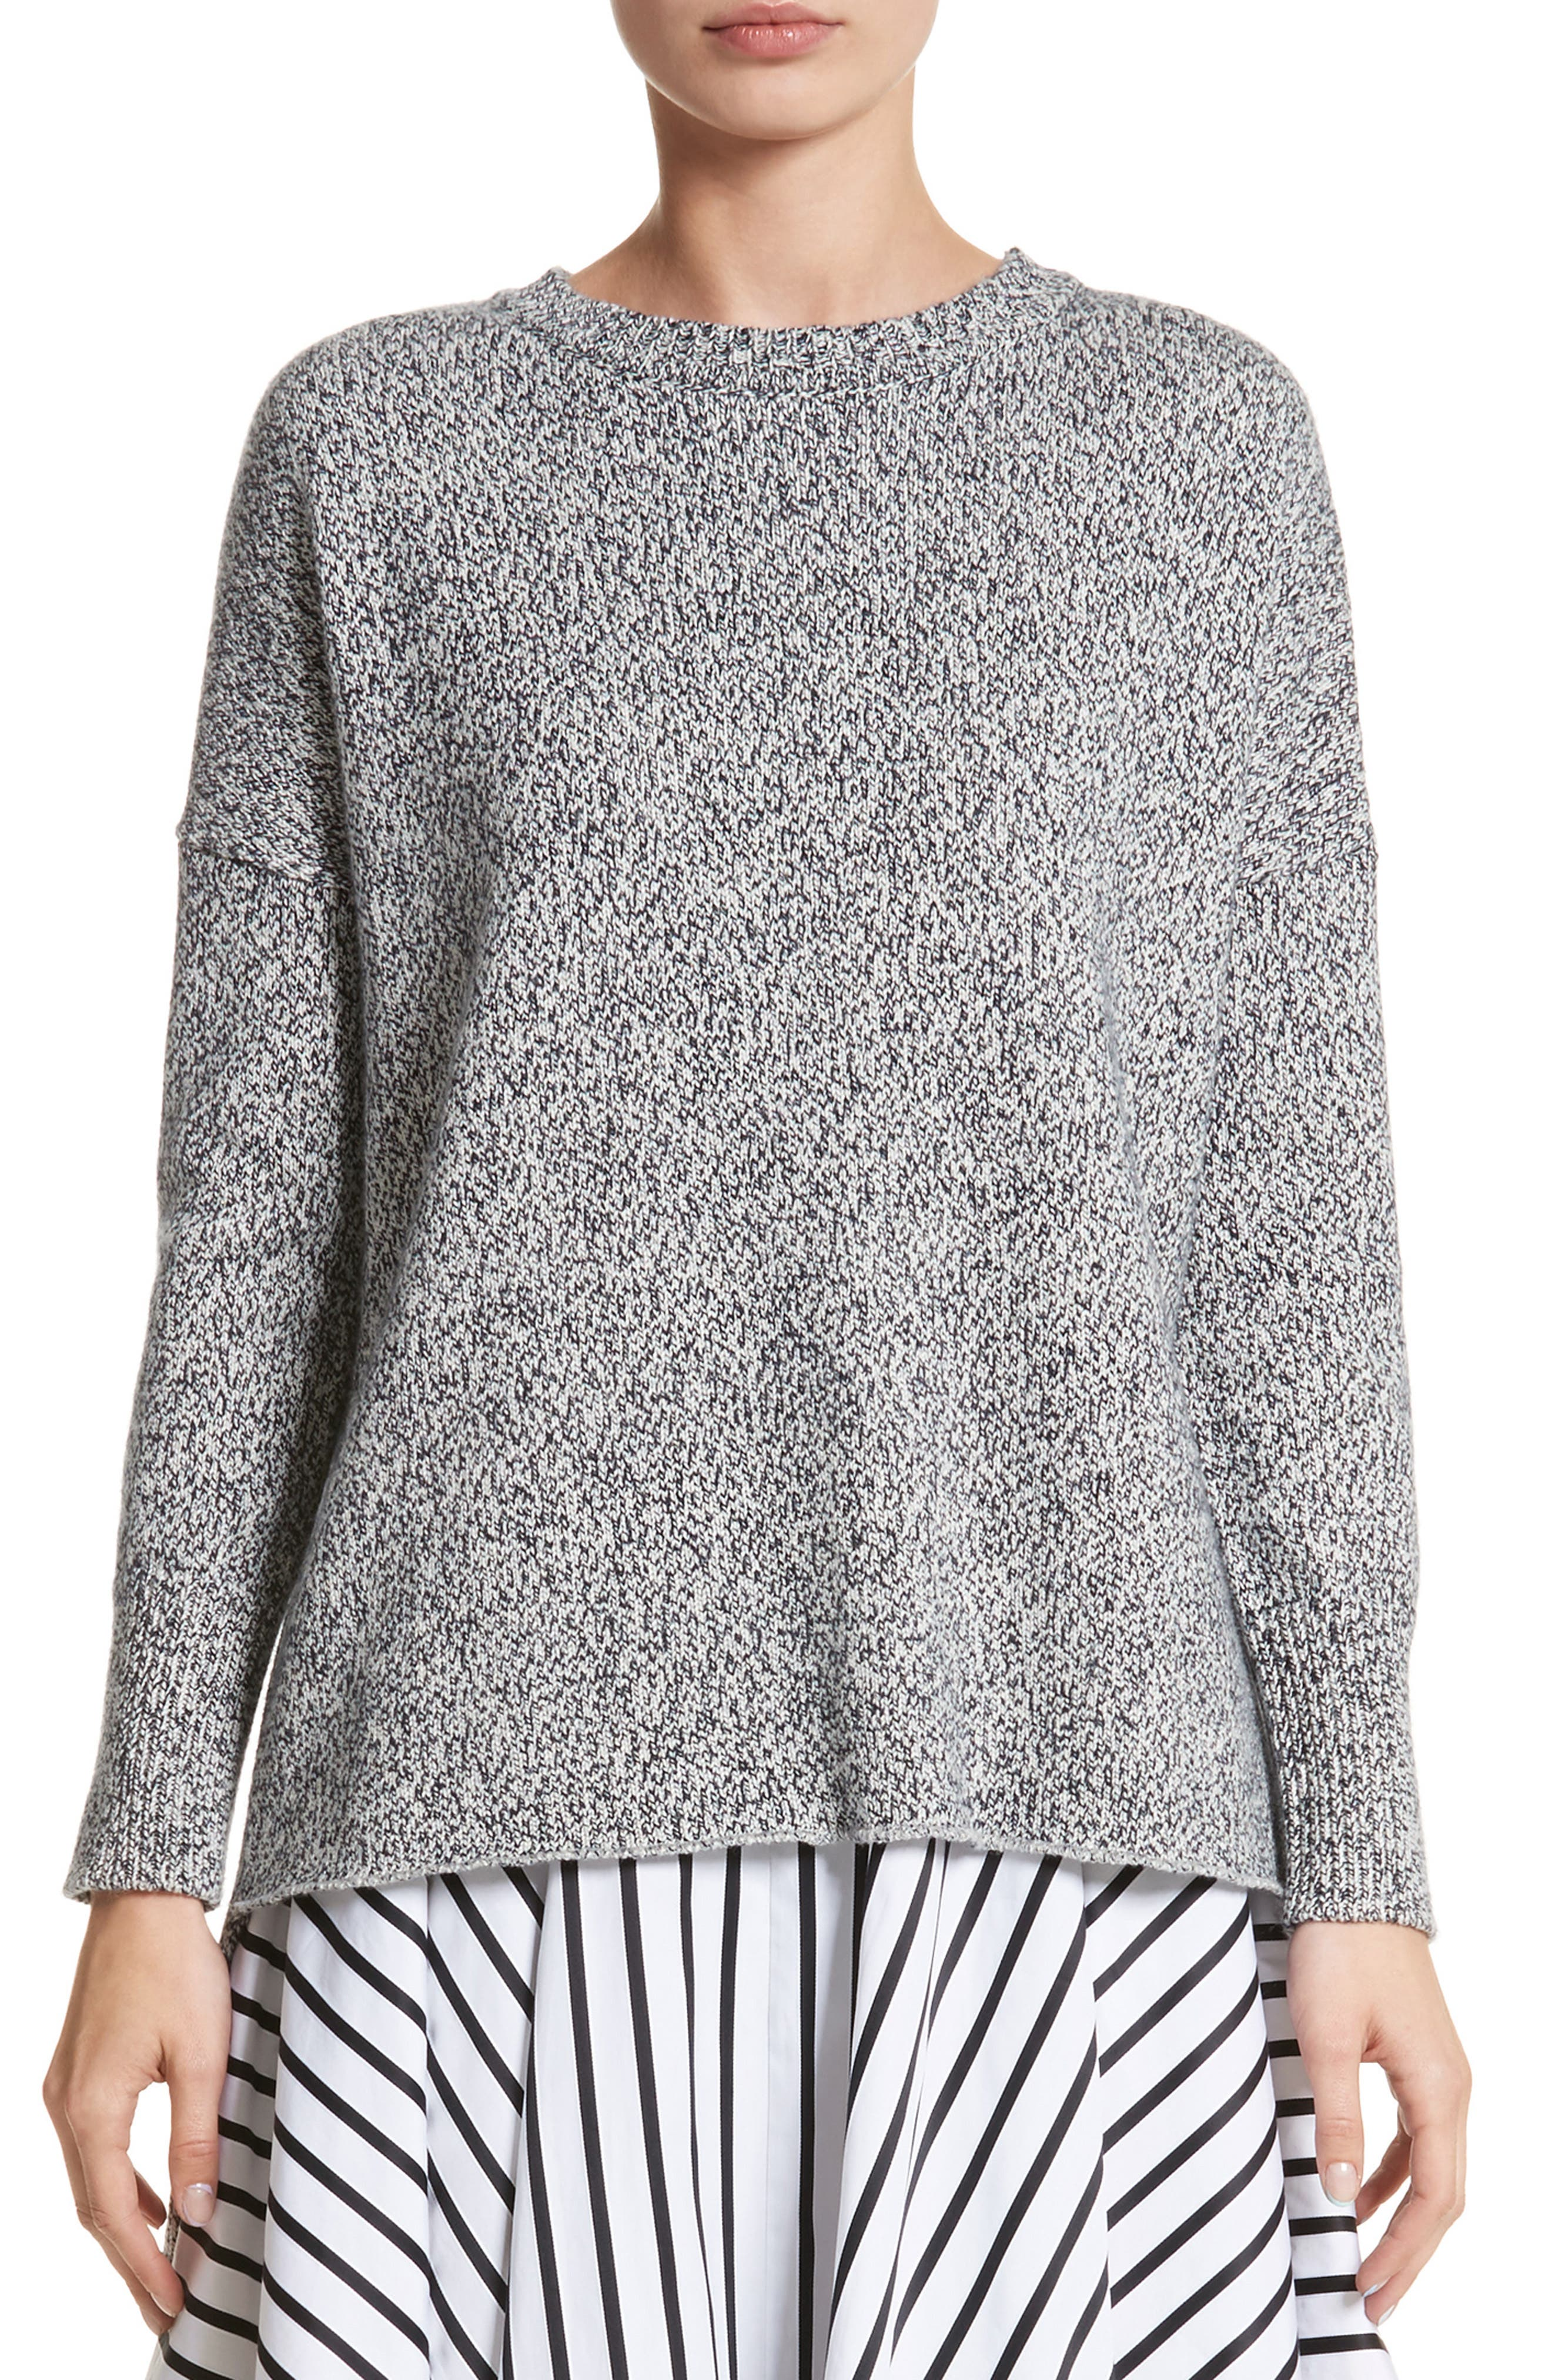 Marled Cotton, Cashmere & Silk Sweater,                         Main,                         color, 020